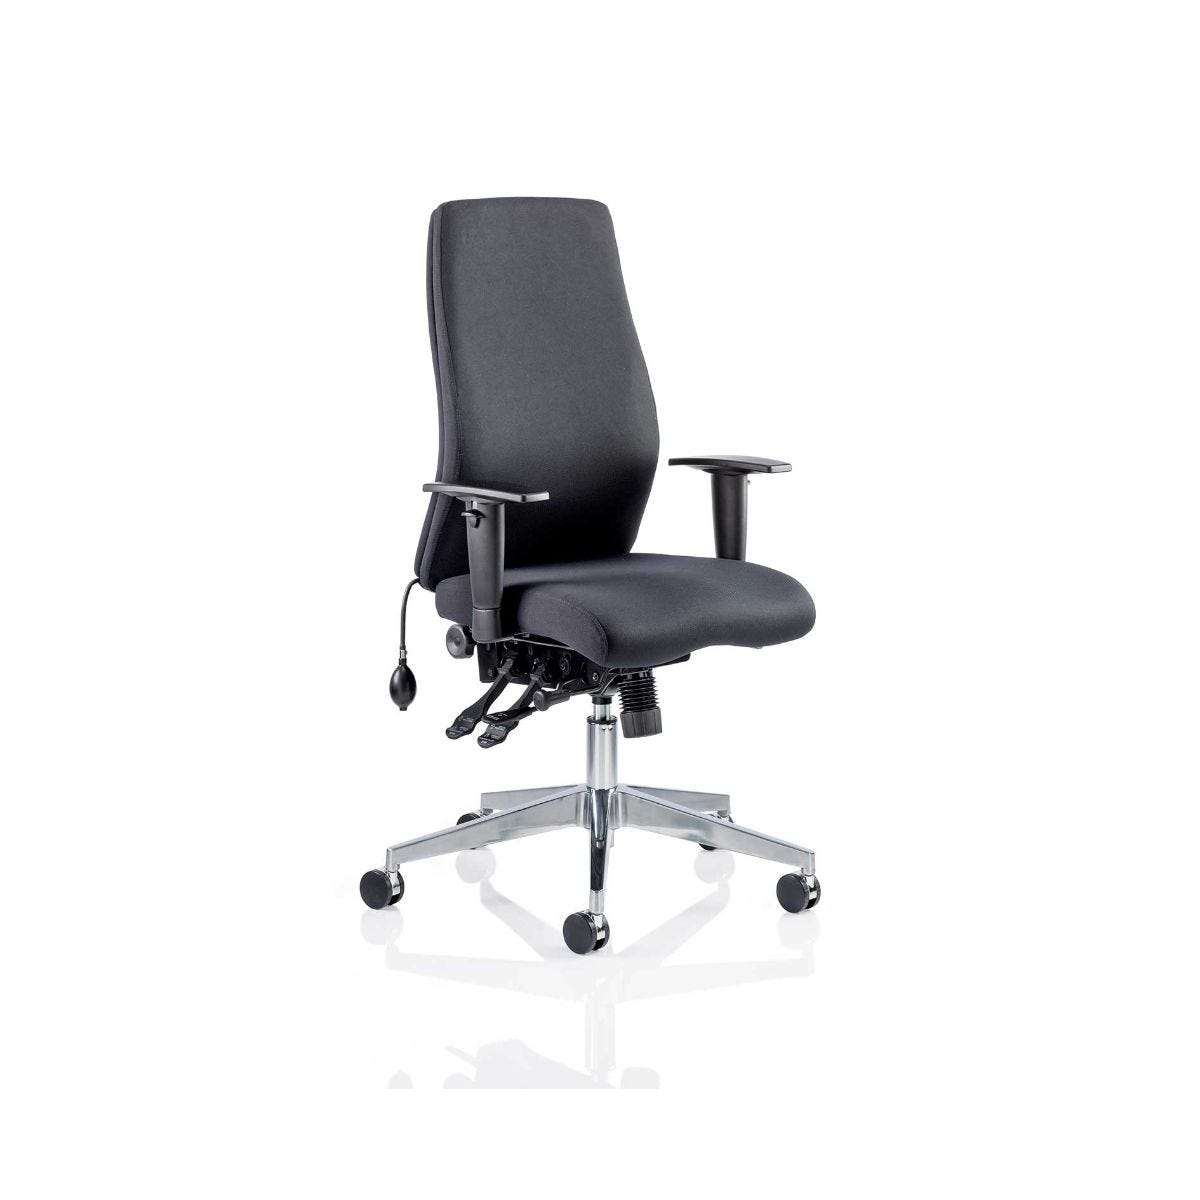 Onyx Posture Office Chair, Black